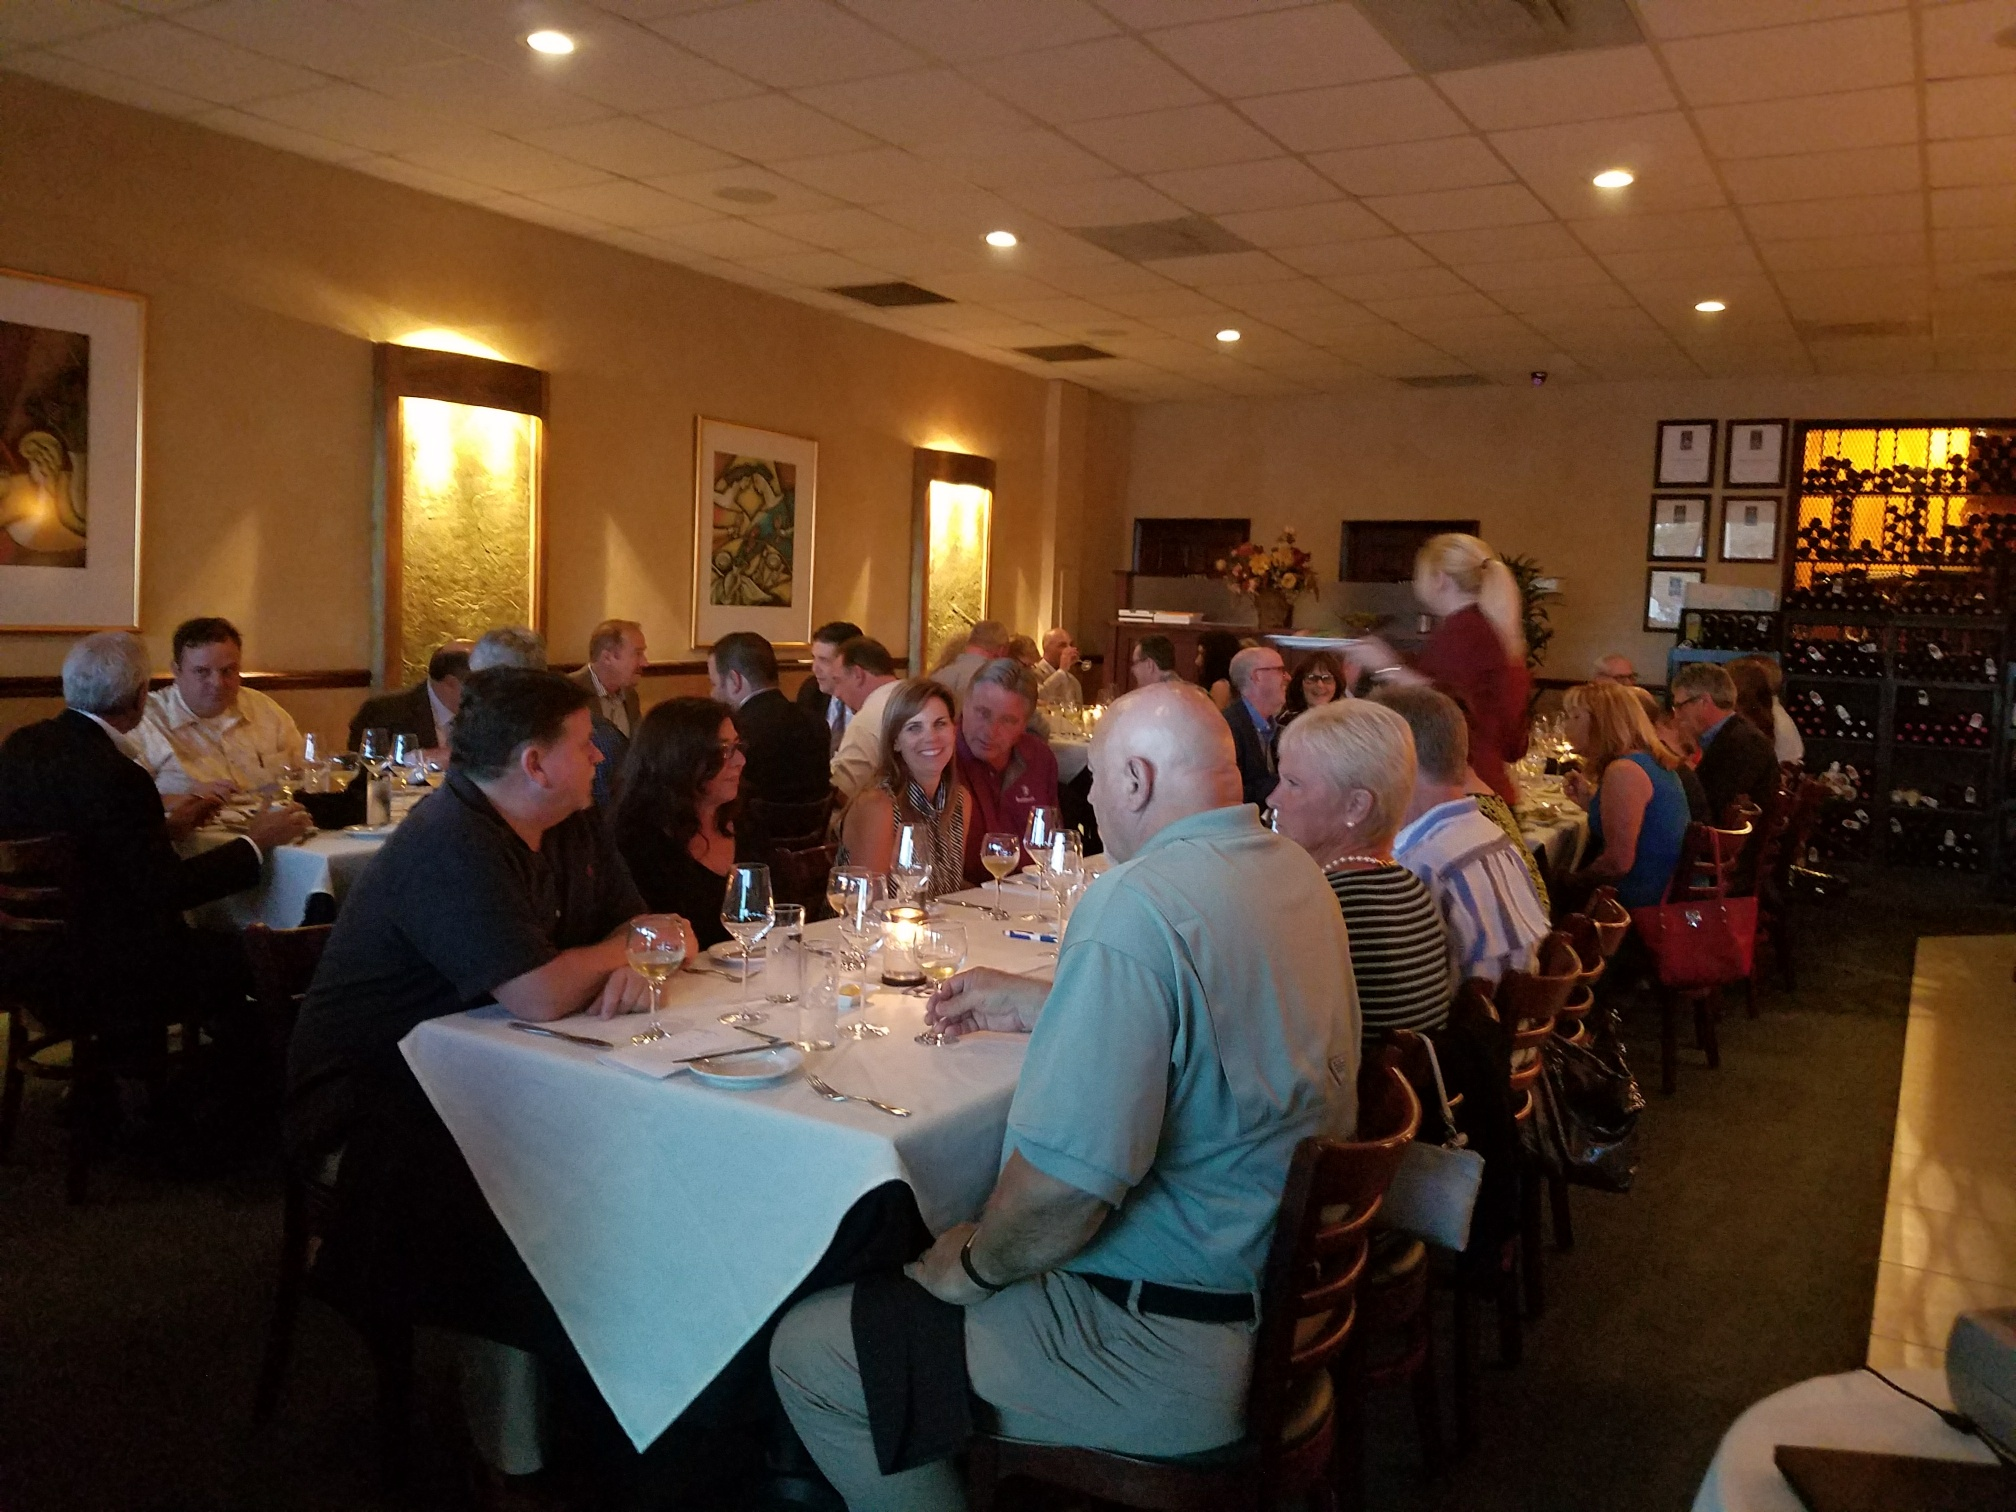 Massimo's Eclectic Fine Dining of Palm Harbor hosted a lovely dinner to raise monies for the 11th Annual Rap River Run.